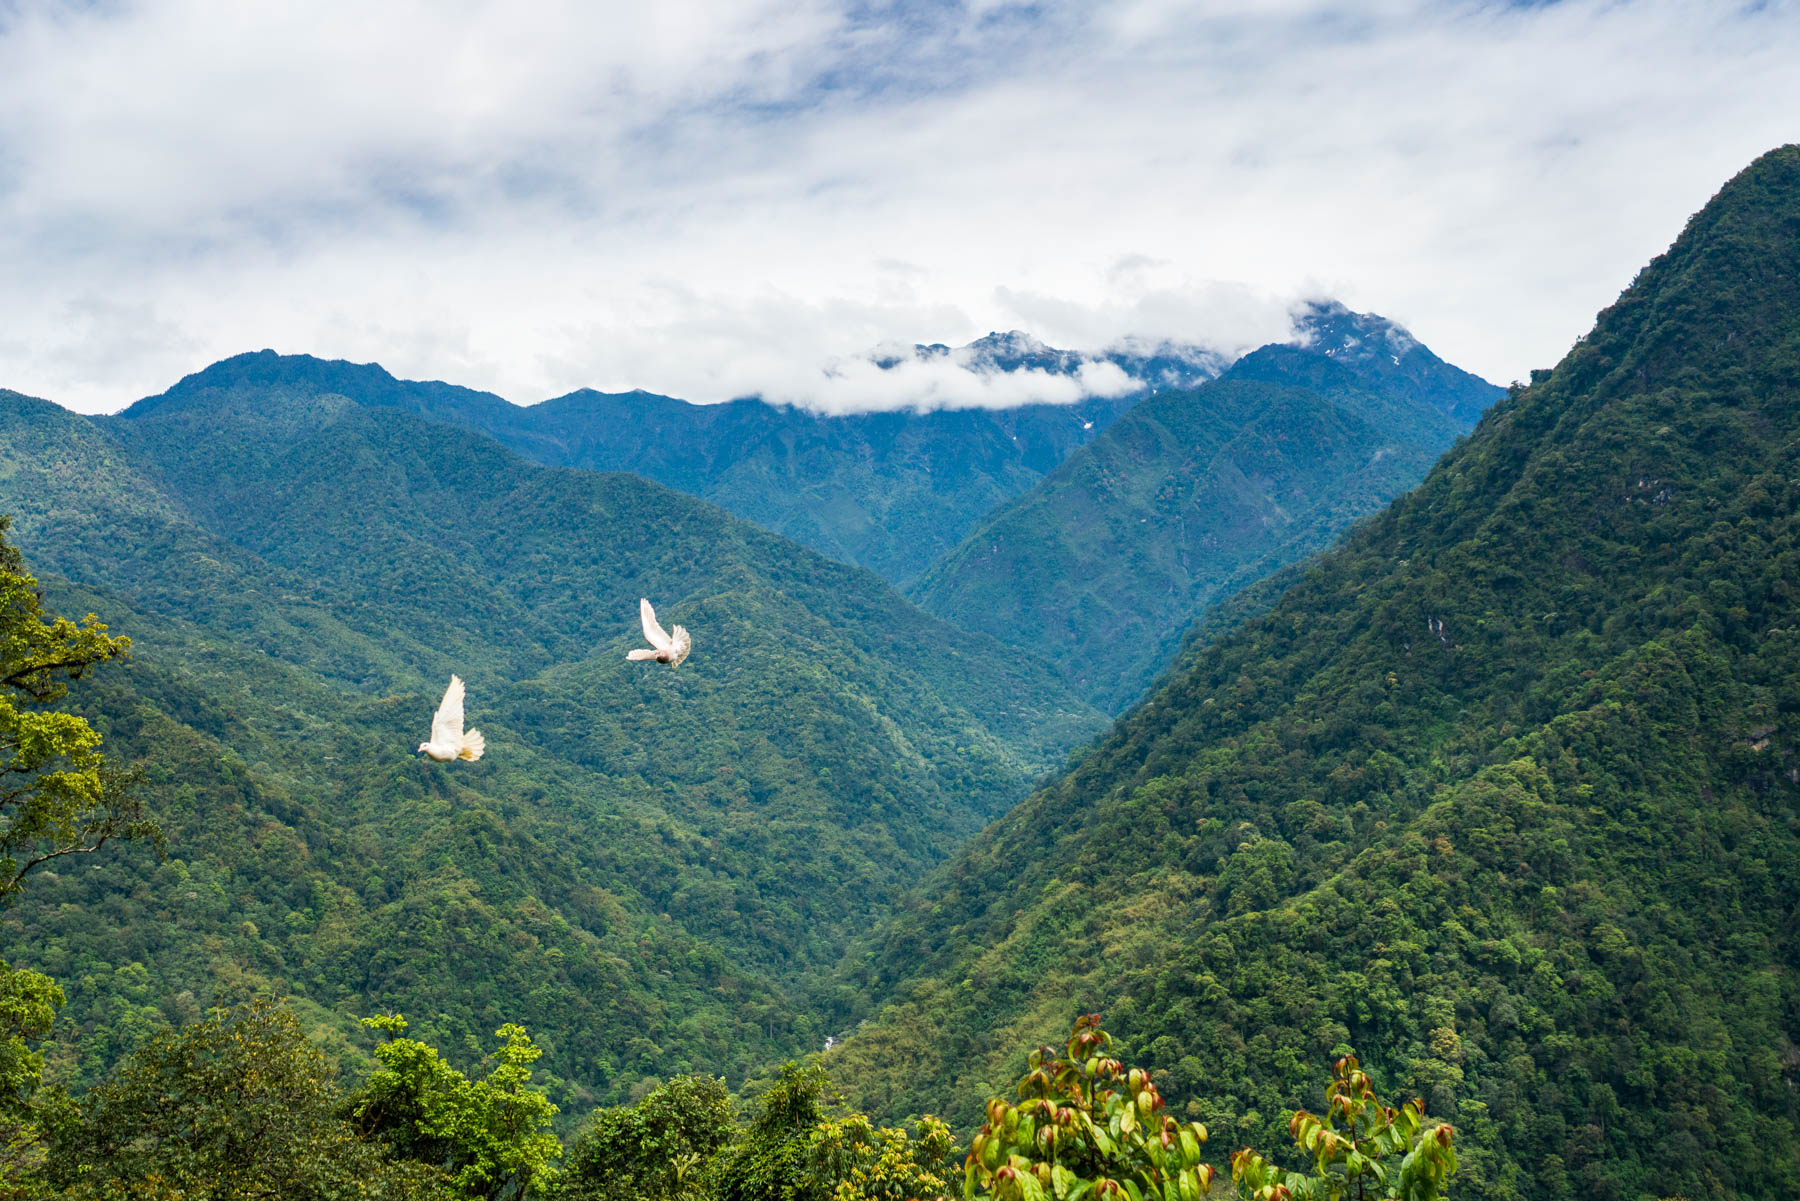 Backpacking in Arunachal Pradesh - The view on the way to Mechuka - Lost With Purpose